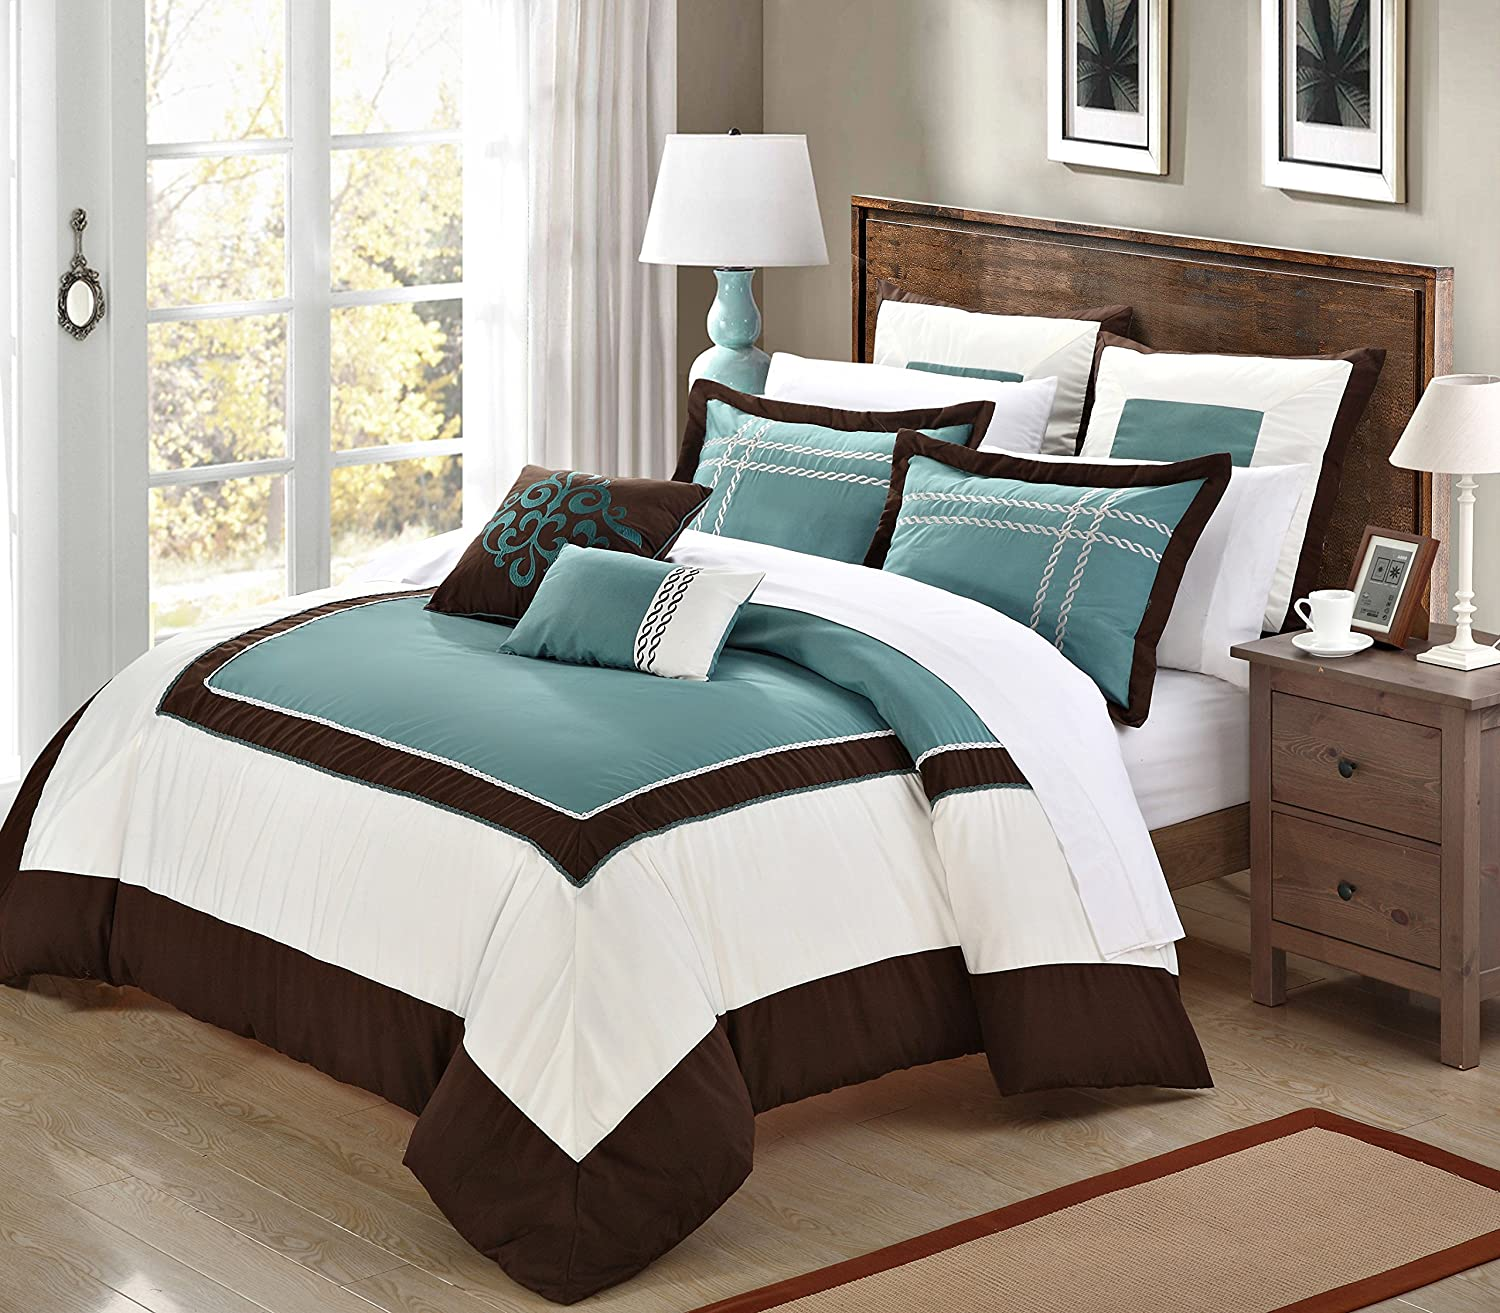 Teal and brown bedding for Bedroom quilt ideas